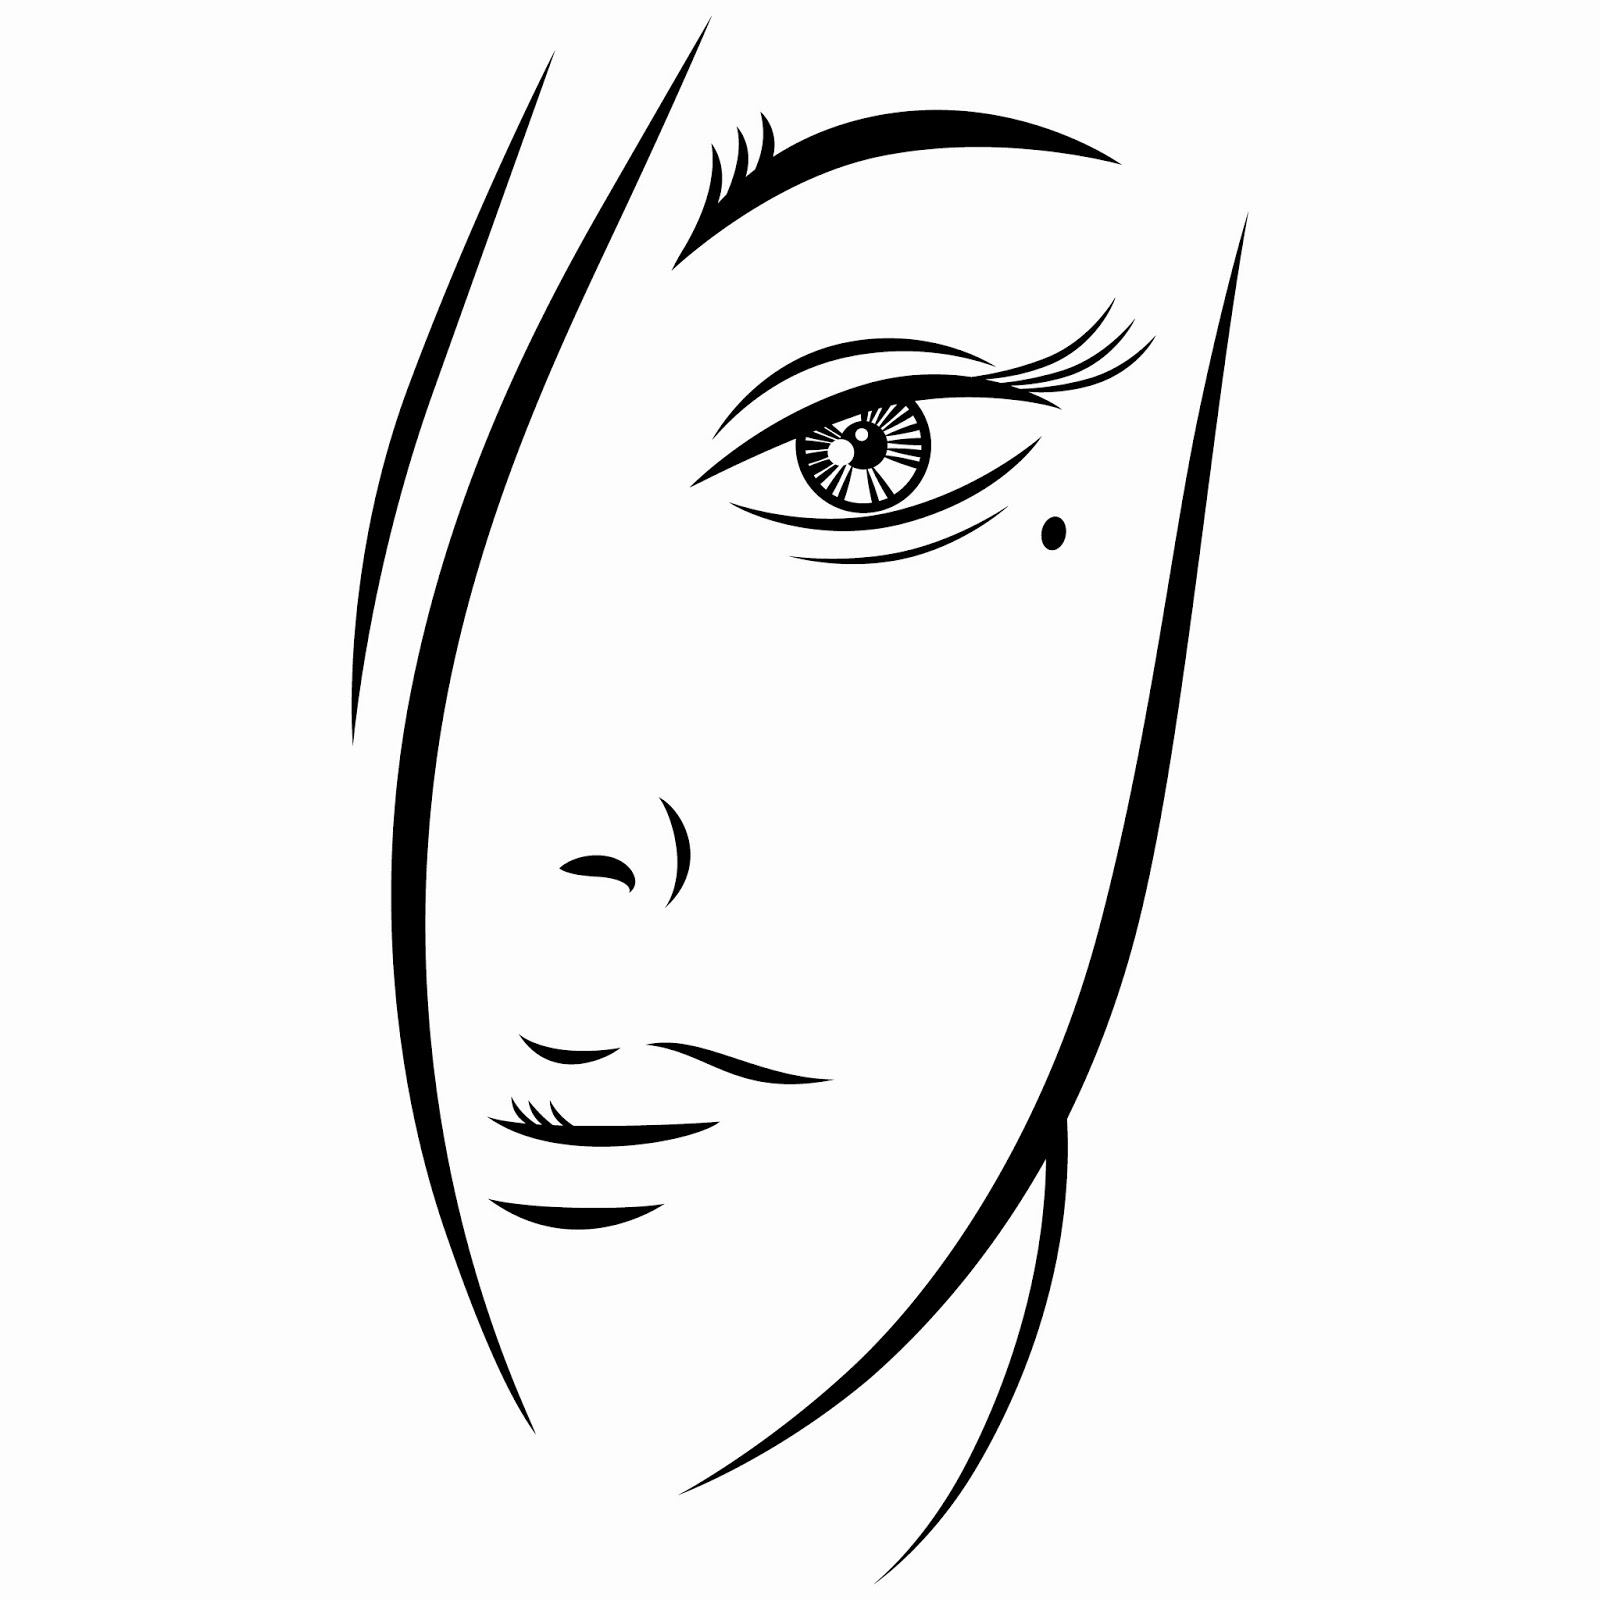 Download Free EPS Vector Illustration: Ink sketch of a person of young beautiful woman face on white background. Vector illustration clip-art design element save in 8 eps